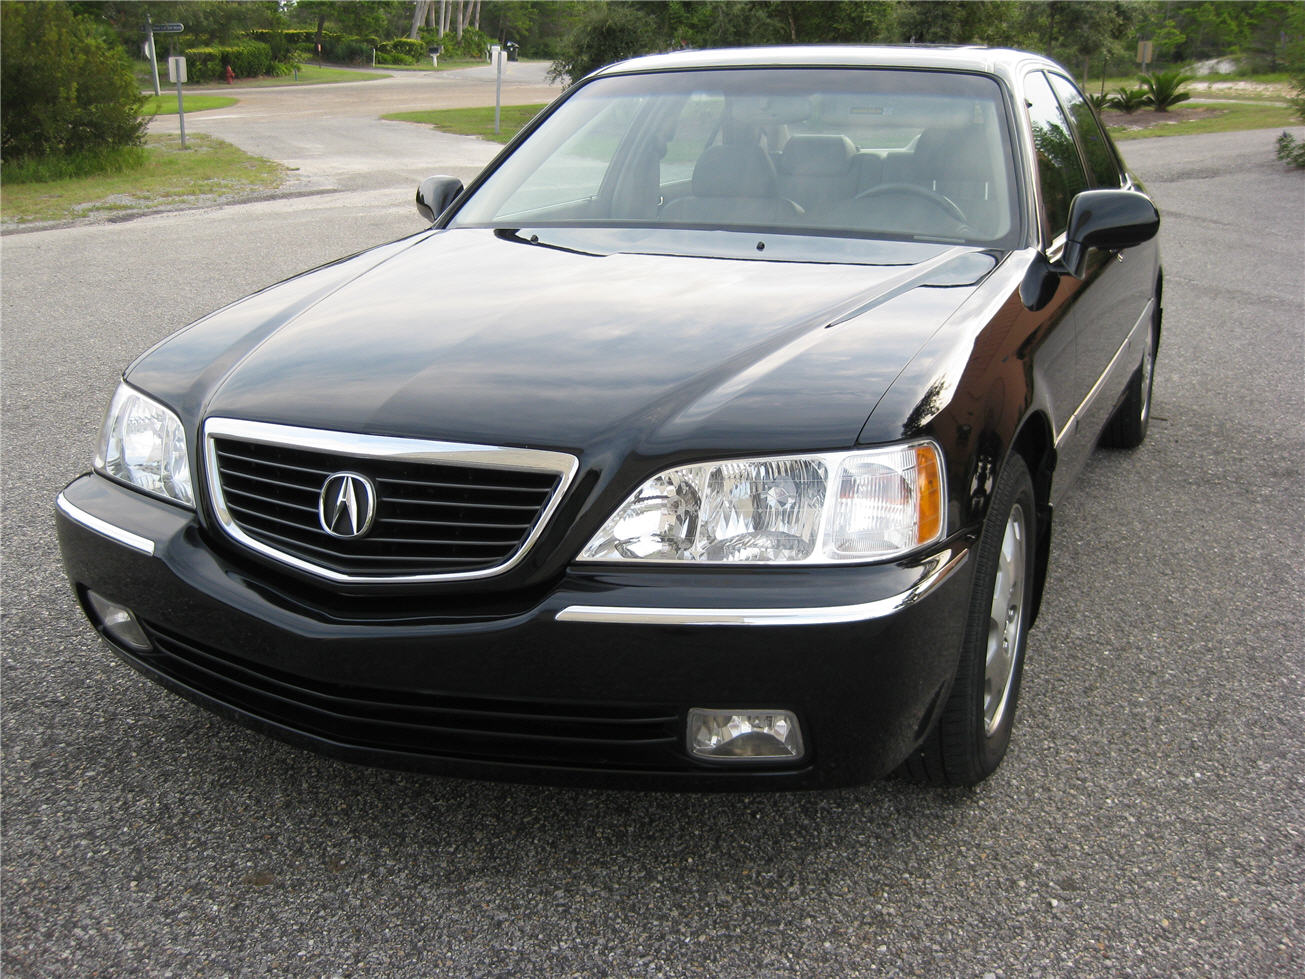 2003 acura rl - information and photos - momentcar